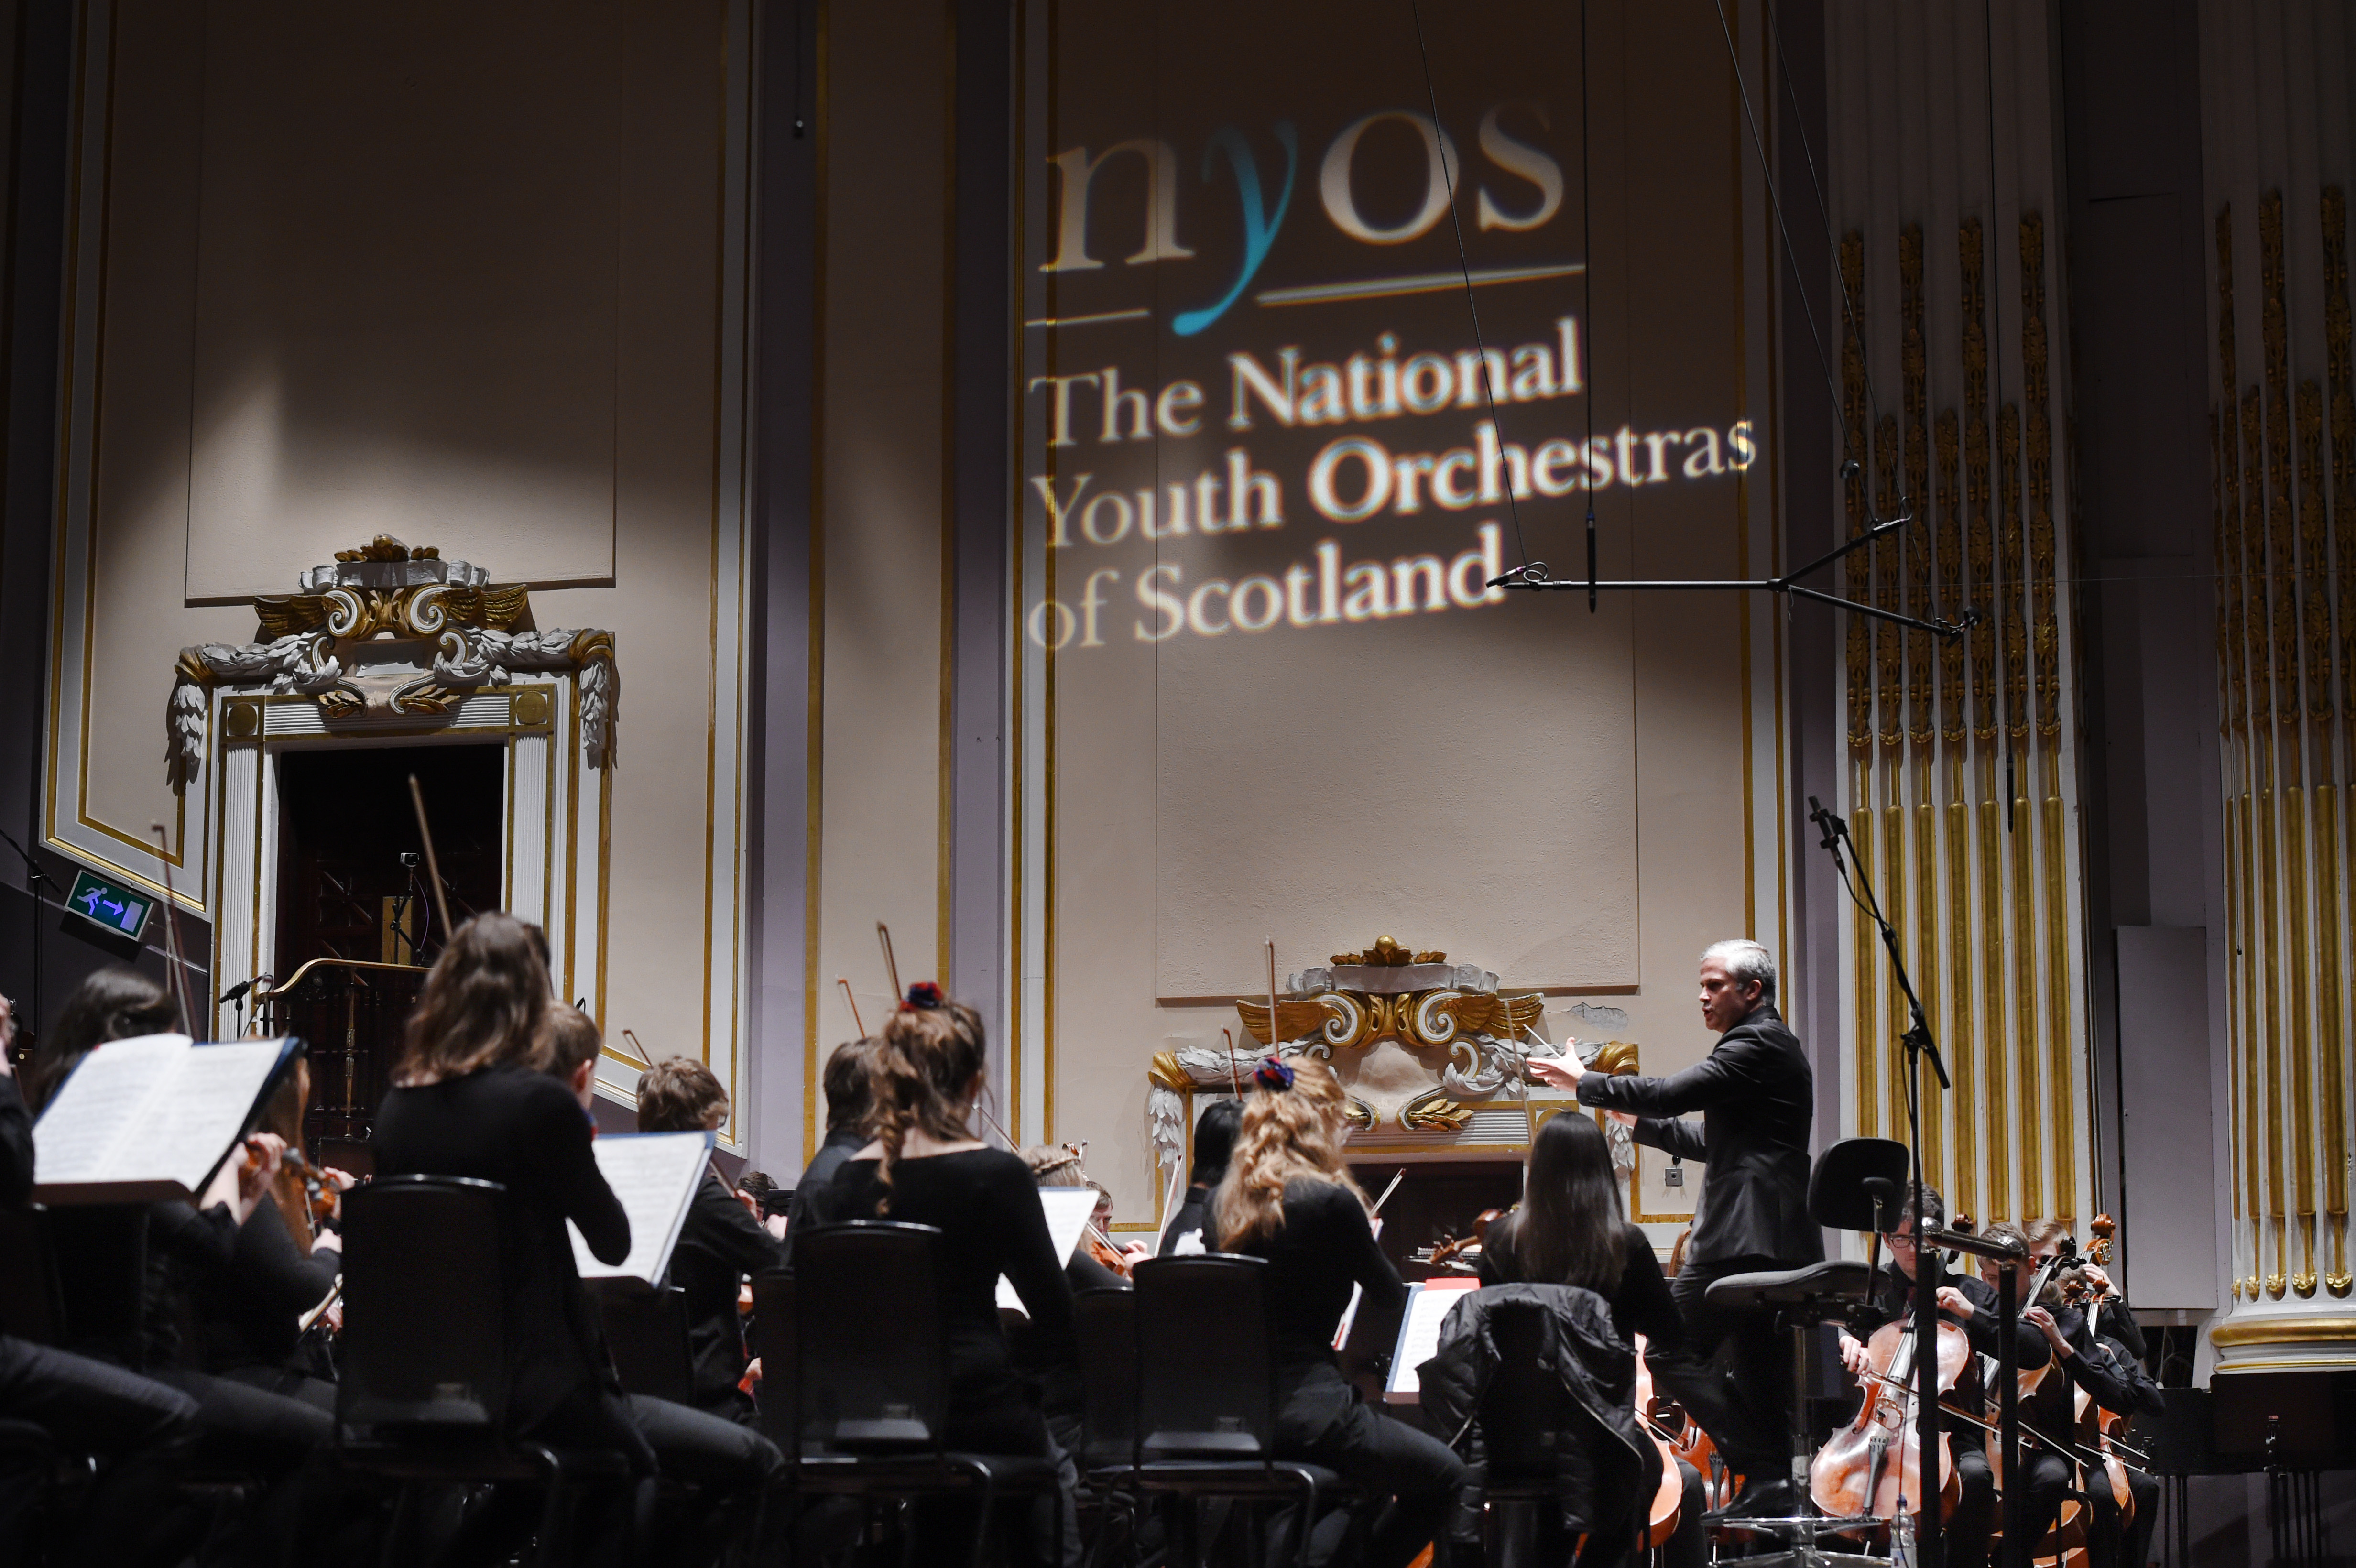 NYOS Symphony Orchestra, Perth Concert Hall, 2015